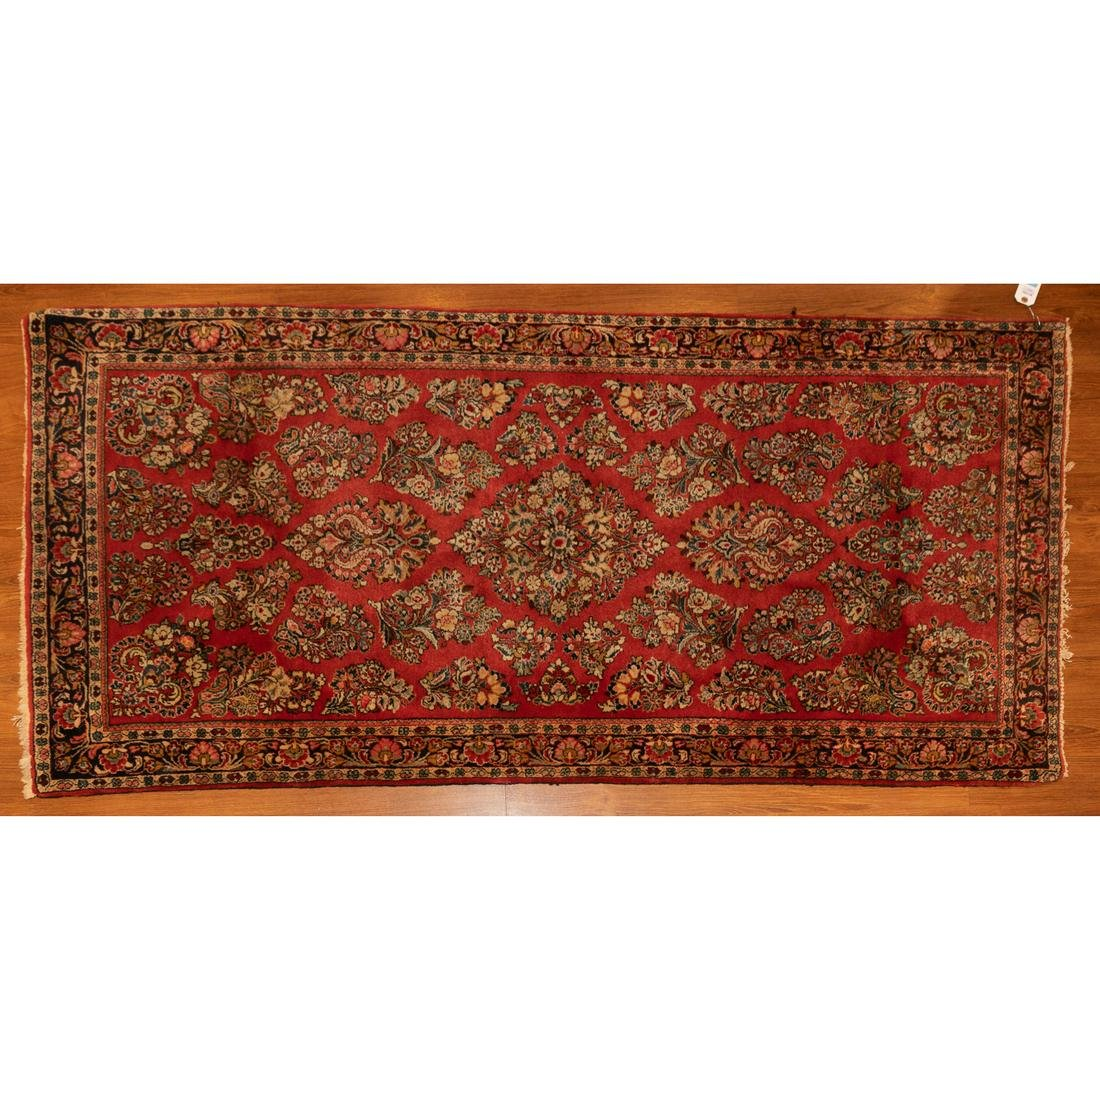 Semi-Antique Sarouk Rug, Persia, 3.3 x 6.9